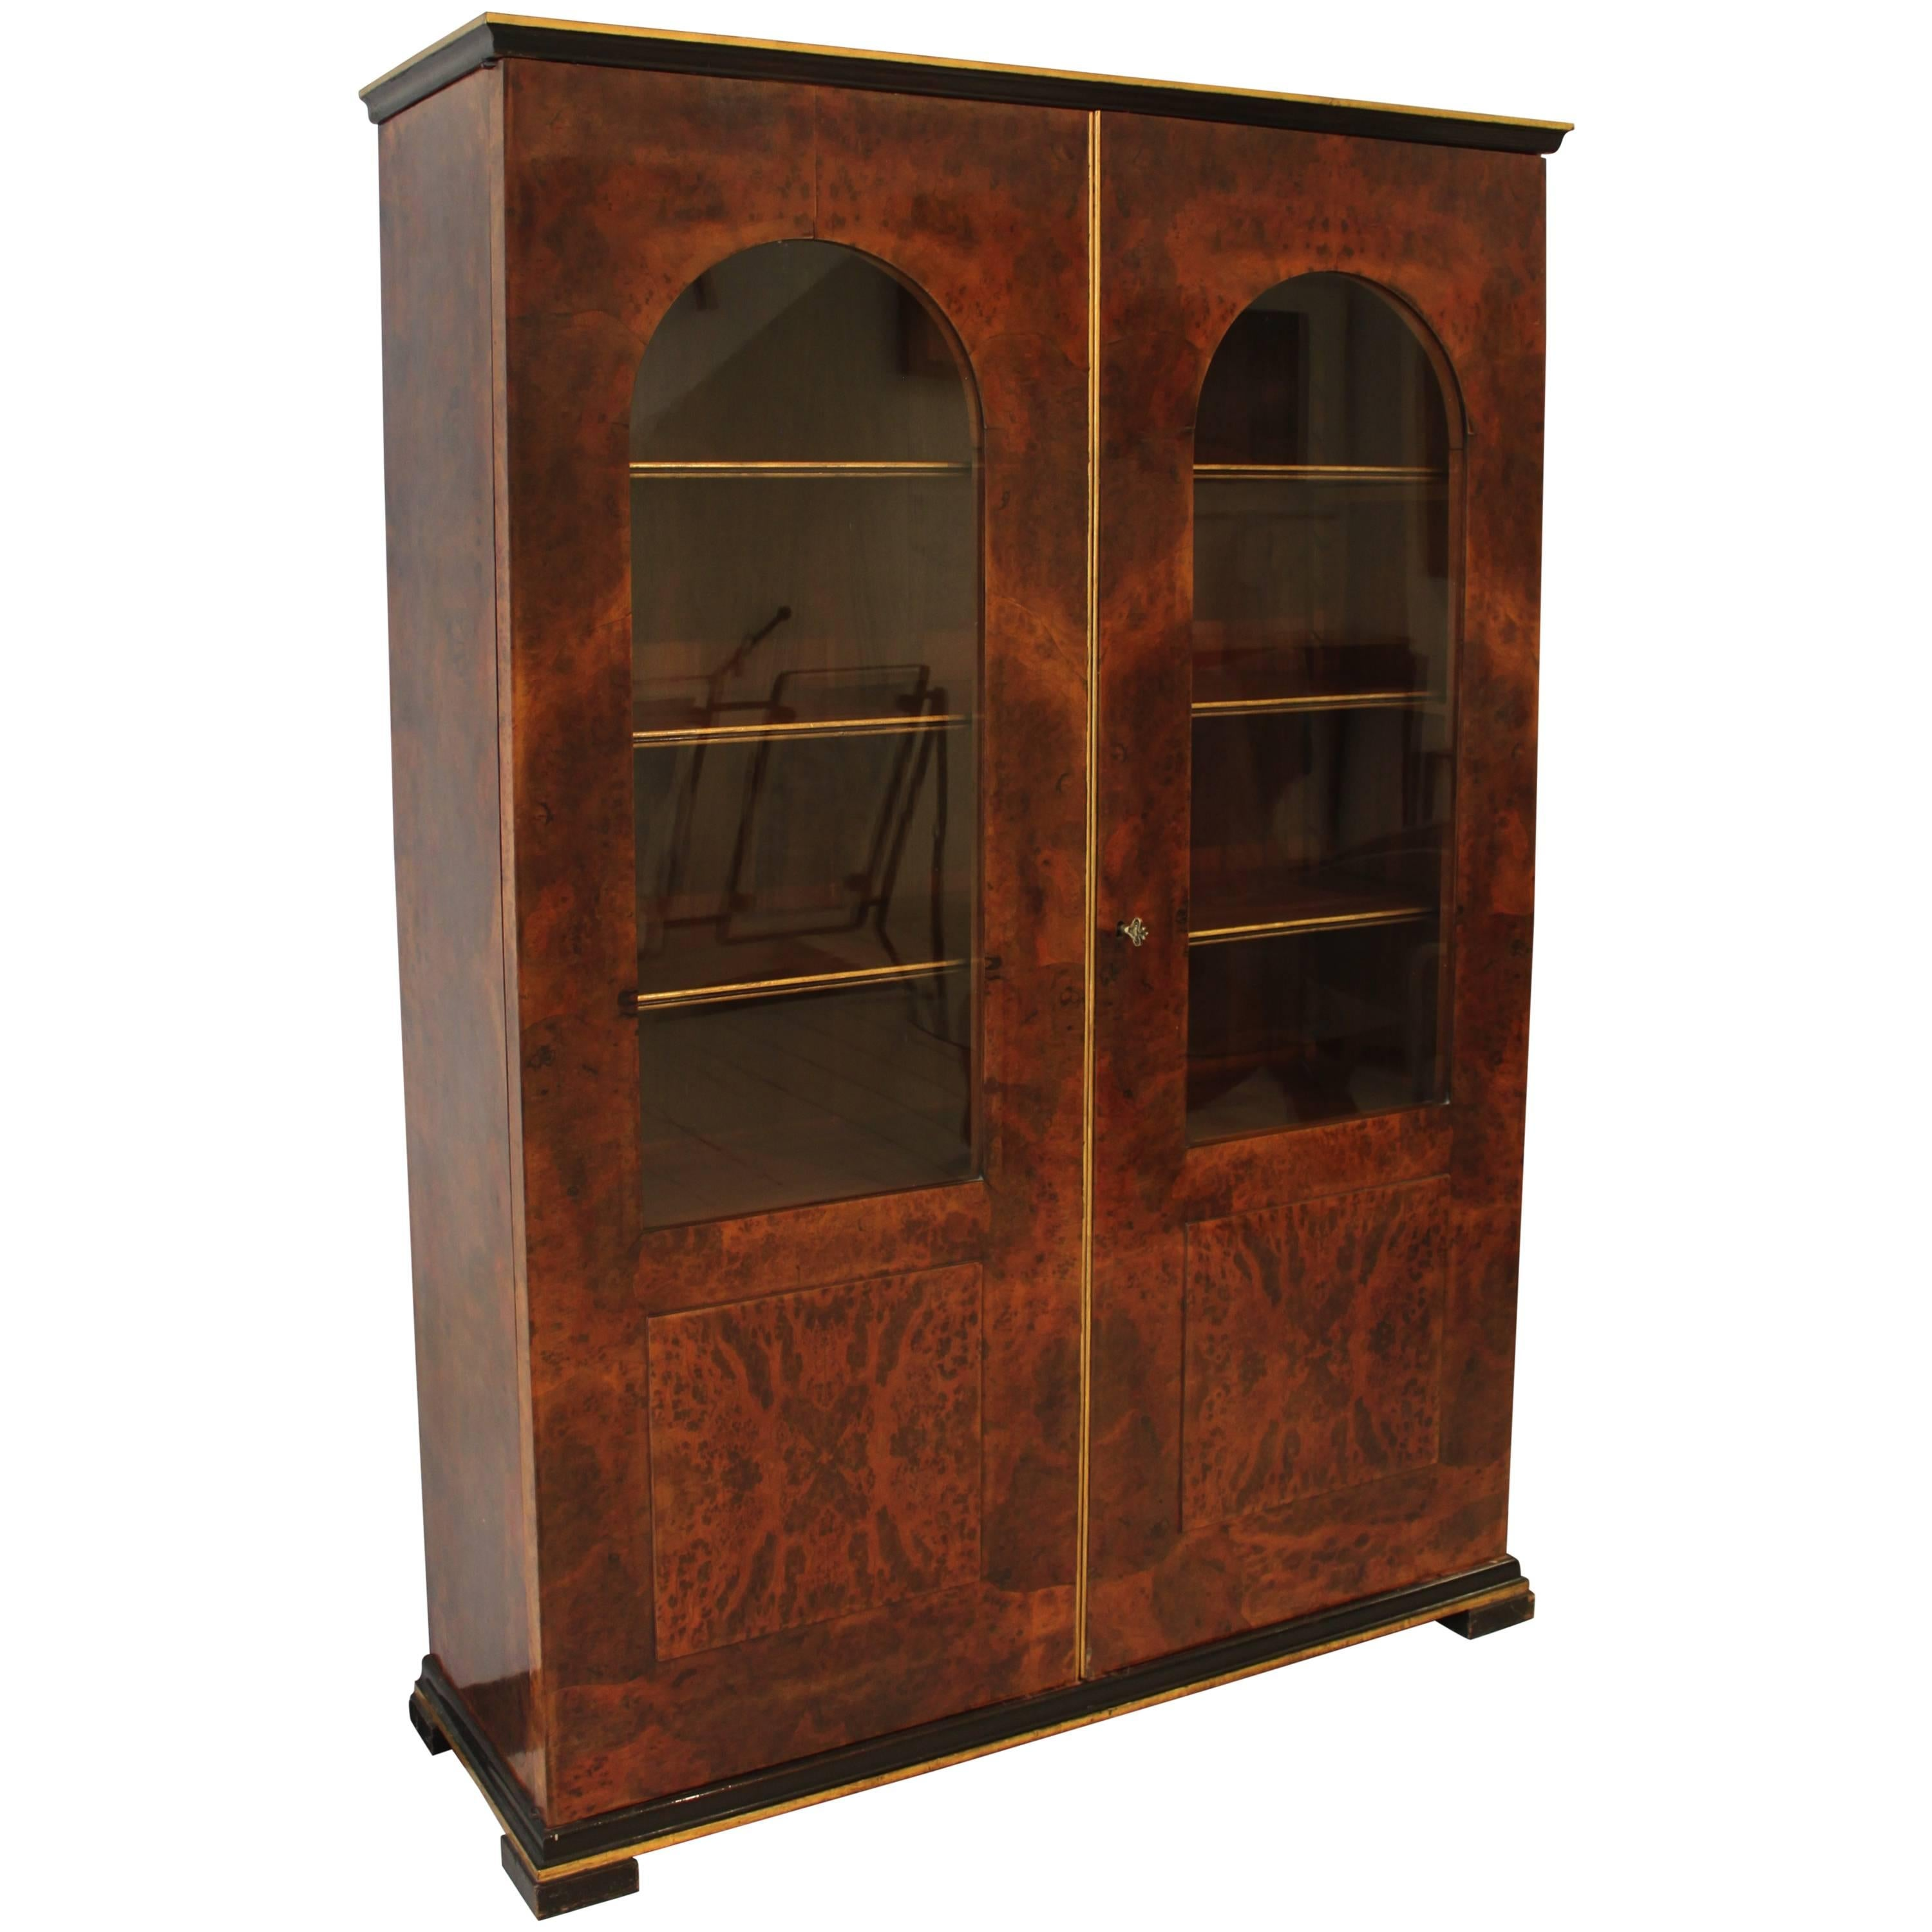 A Beautiful French Empire Bibliotheque Cabinet With Grill Doors For